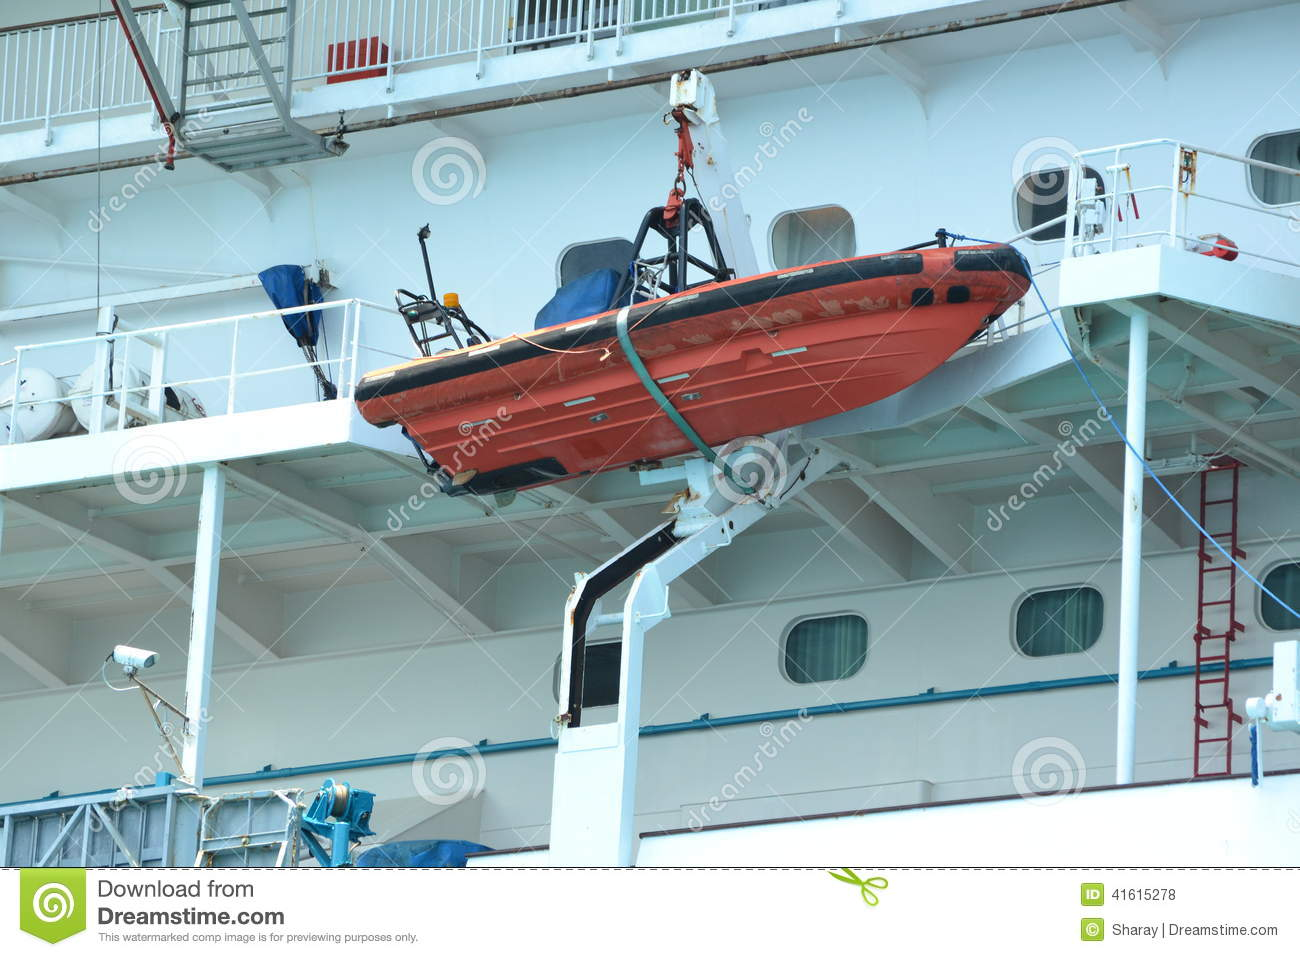 44 Year Old Woman Goes Overboard Carnival Cruise Out Of